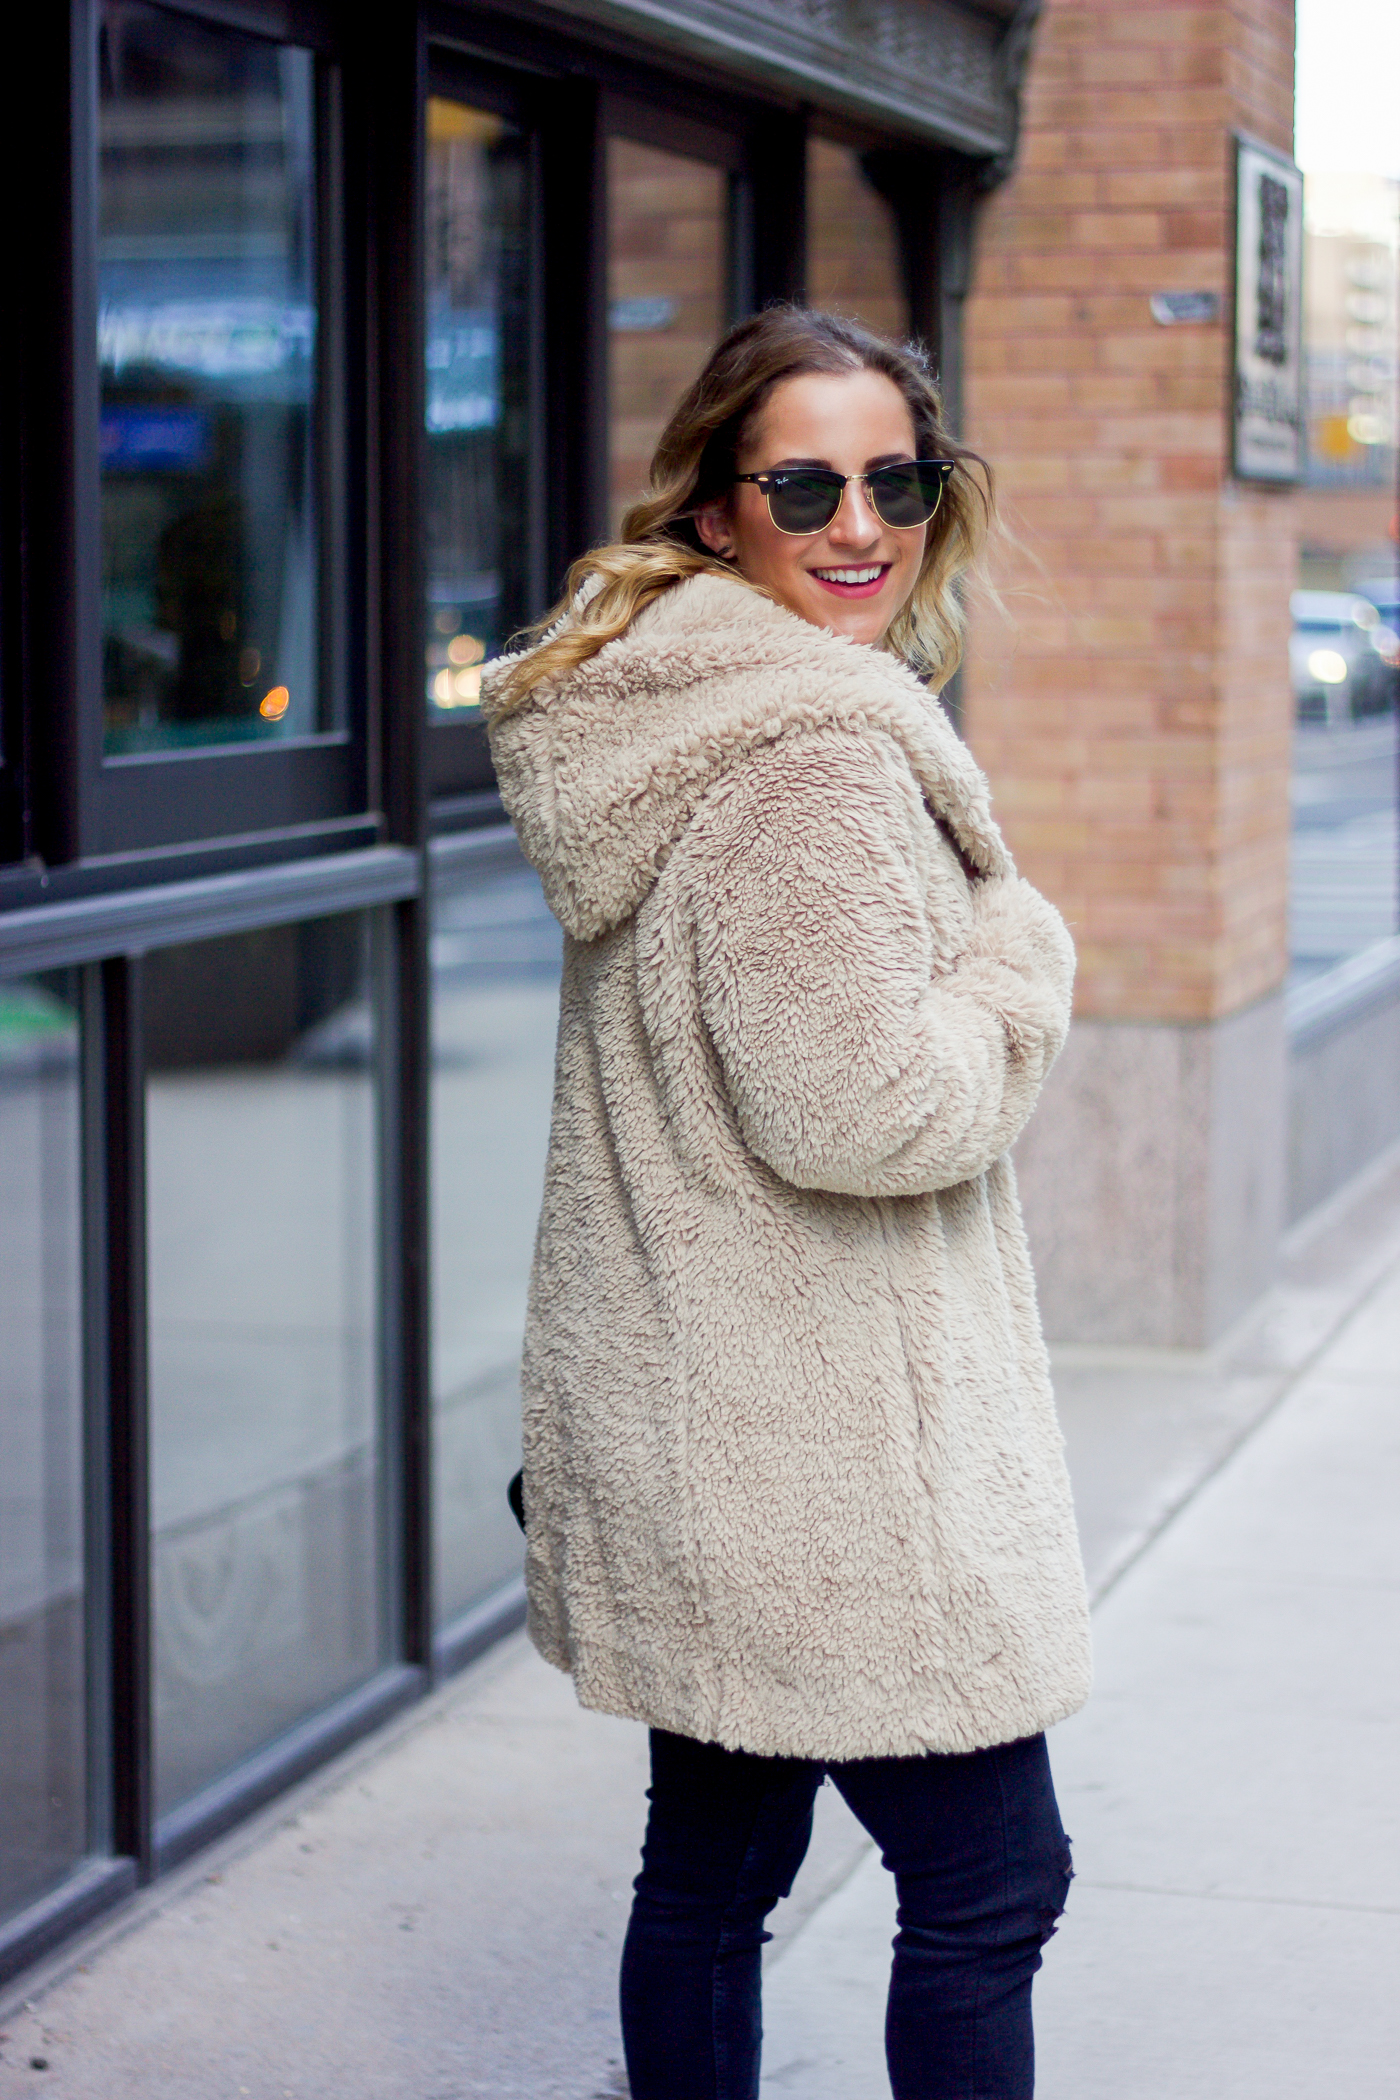 Canadian life and style blogger, Jackie Goldhar, of Something About That wearing a cozy winter outfit